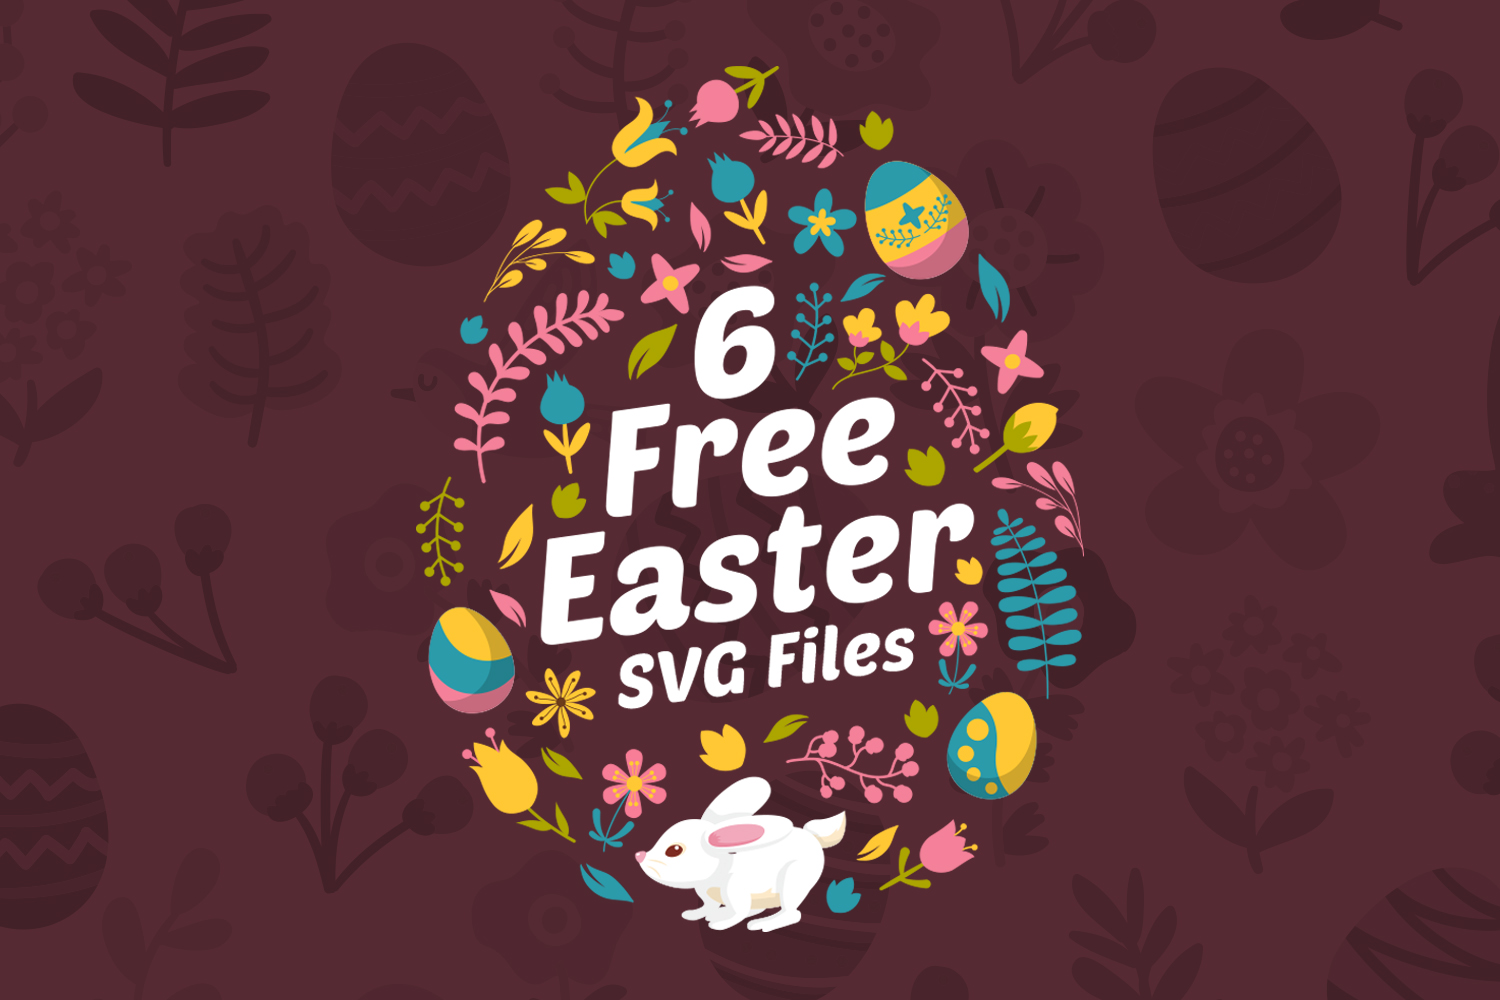 6 FREE Easter SVG Files